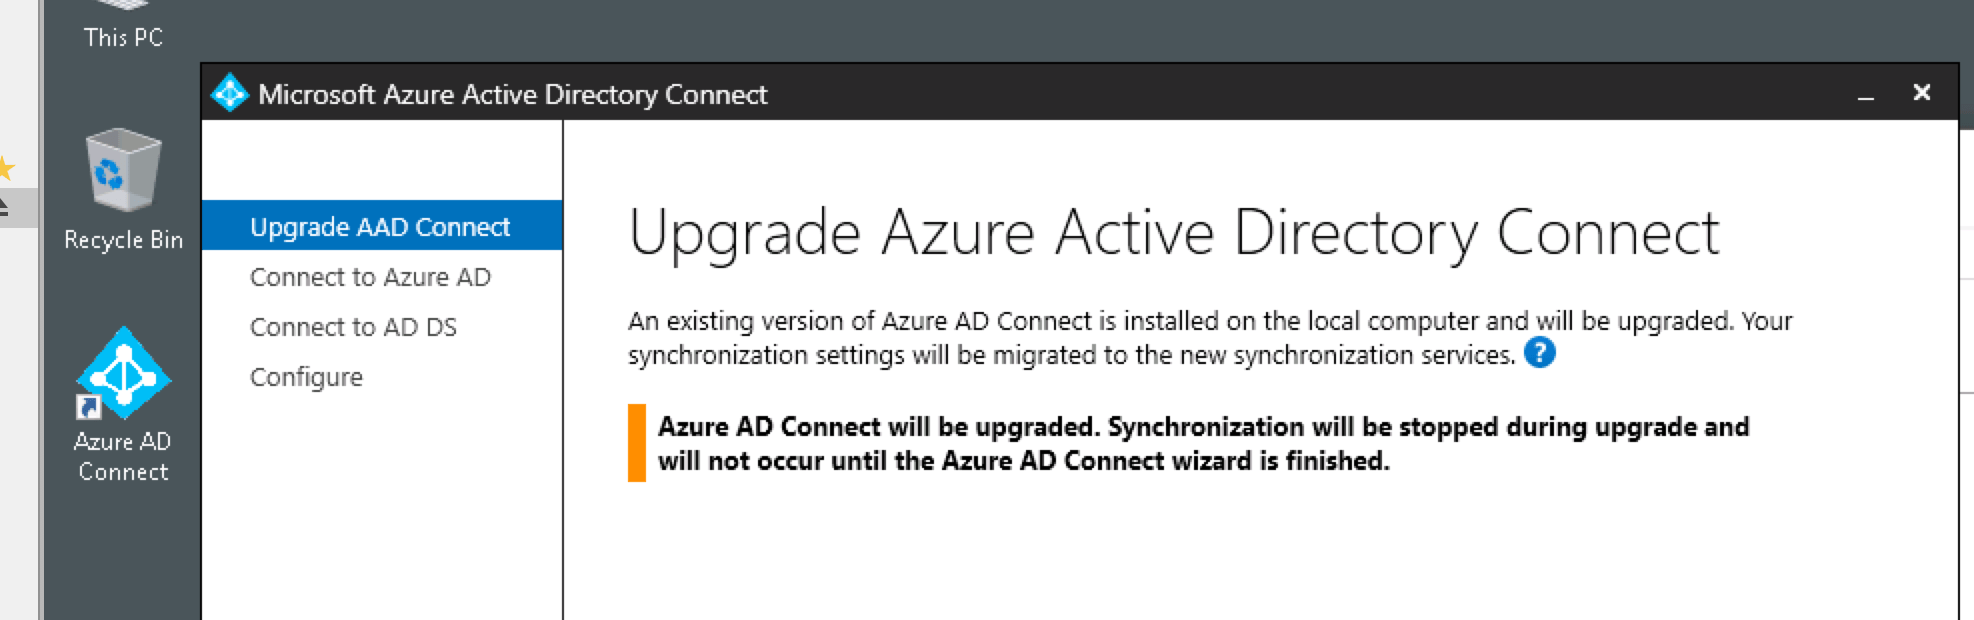 Azure Active Directory Connect Update